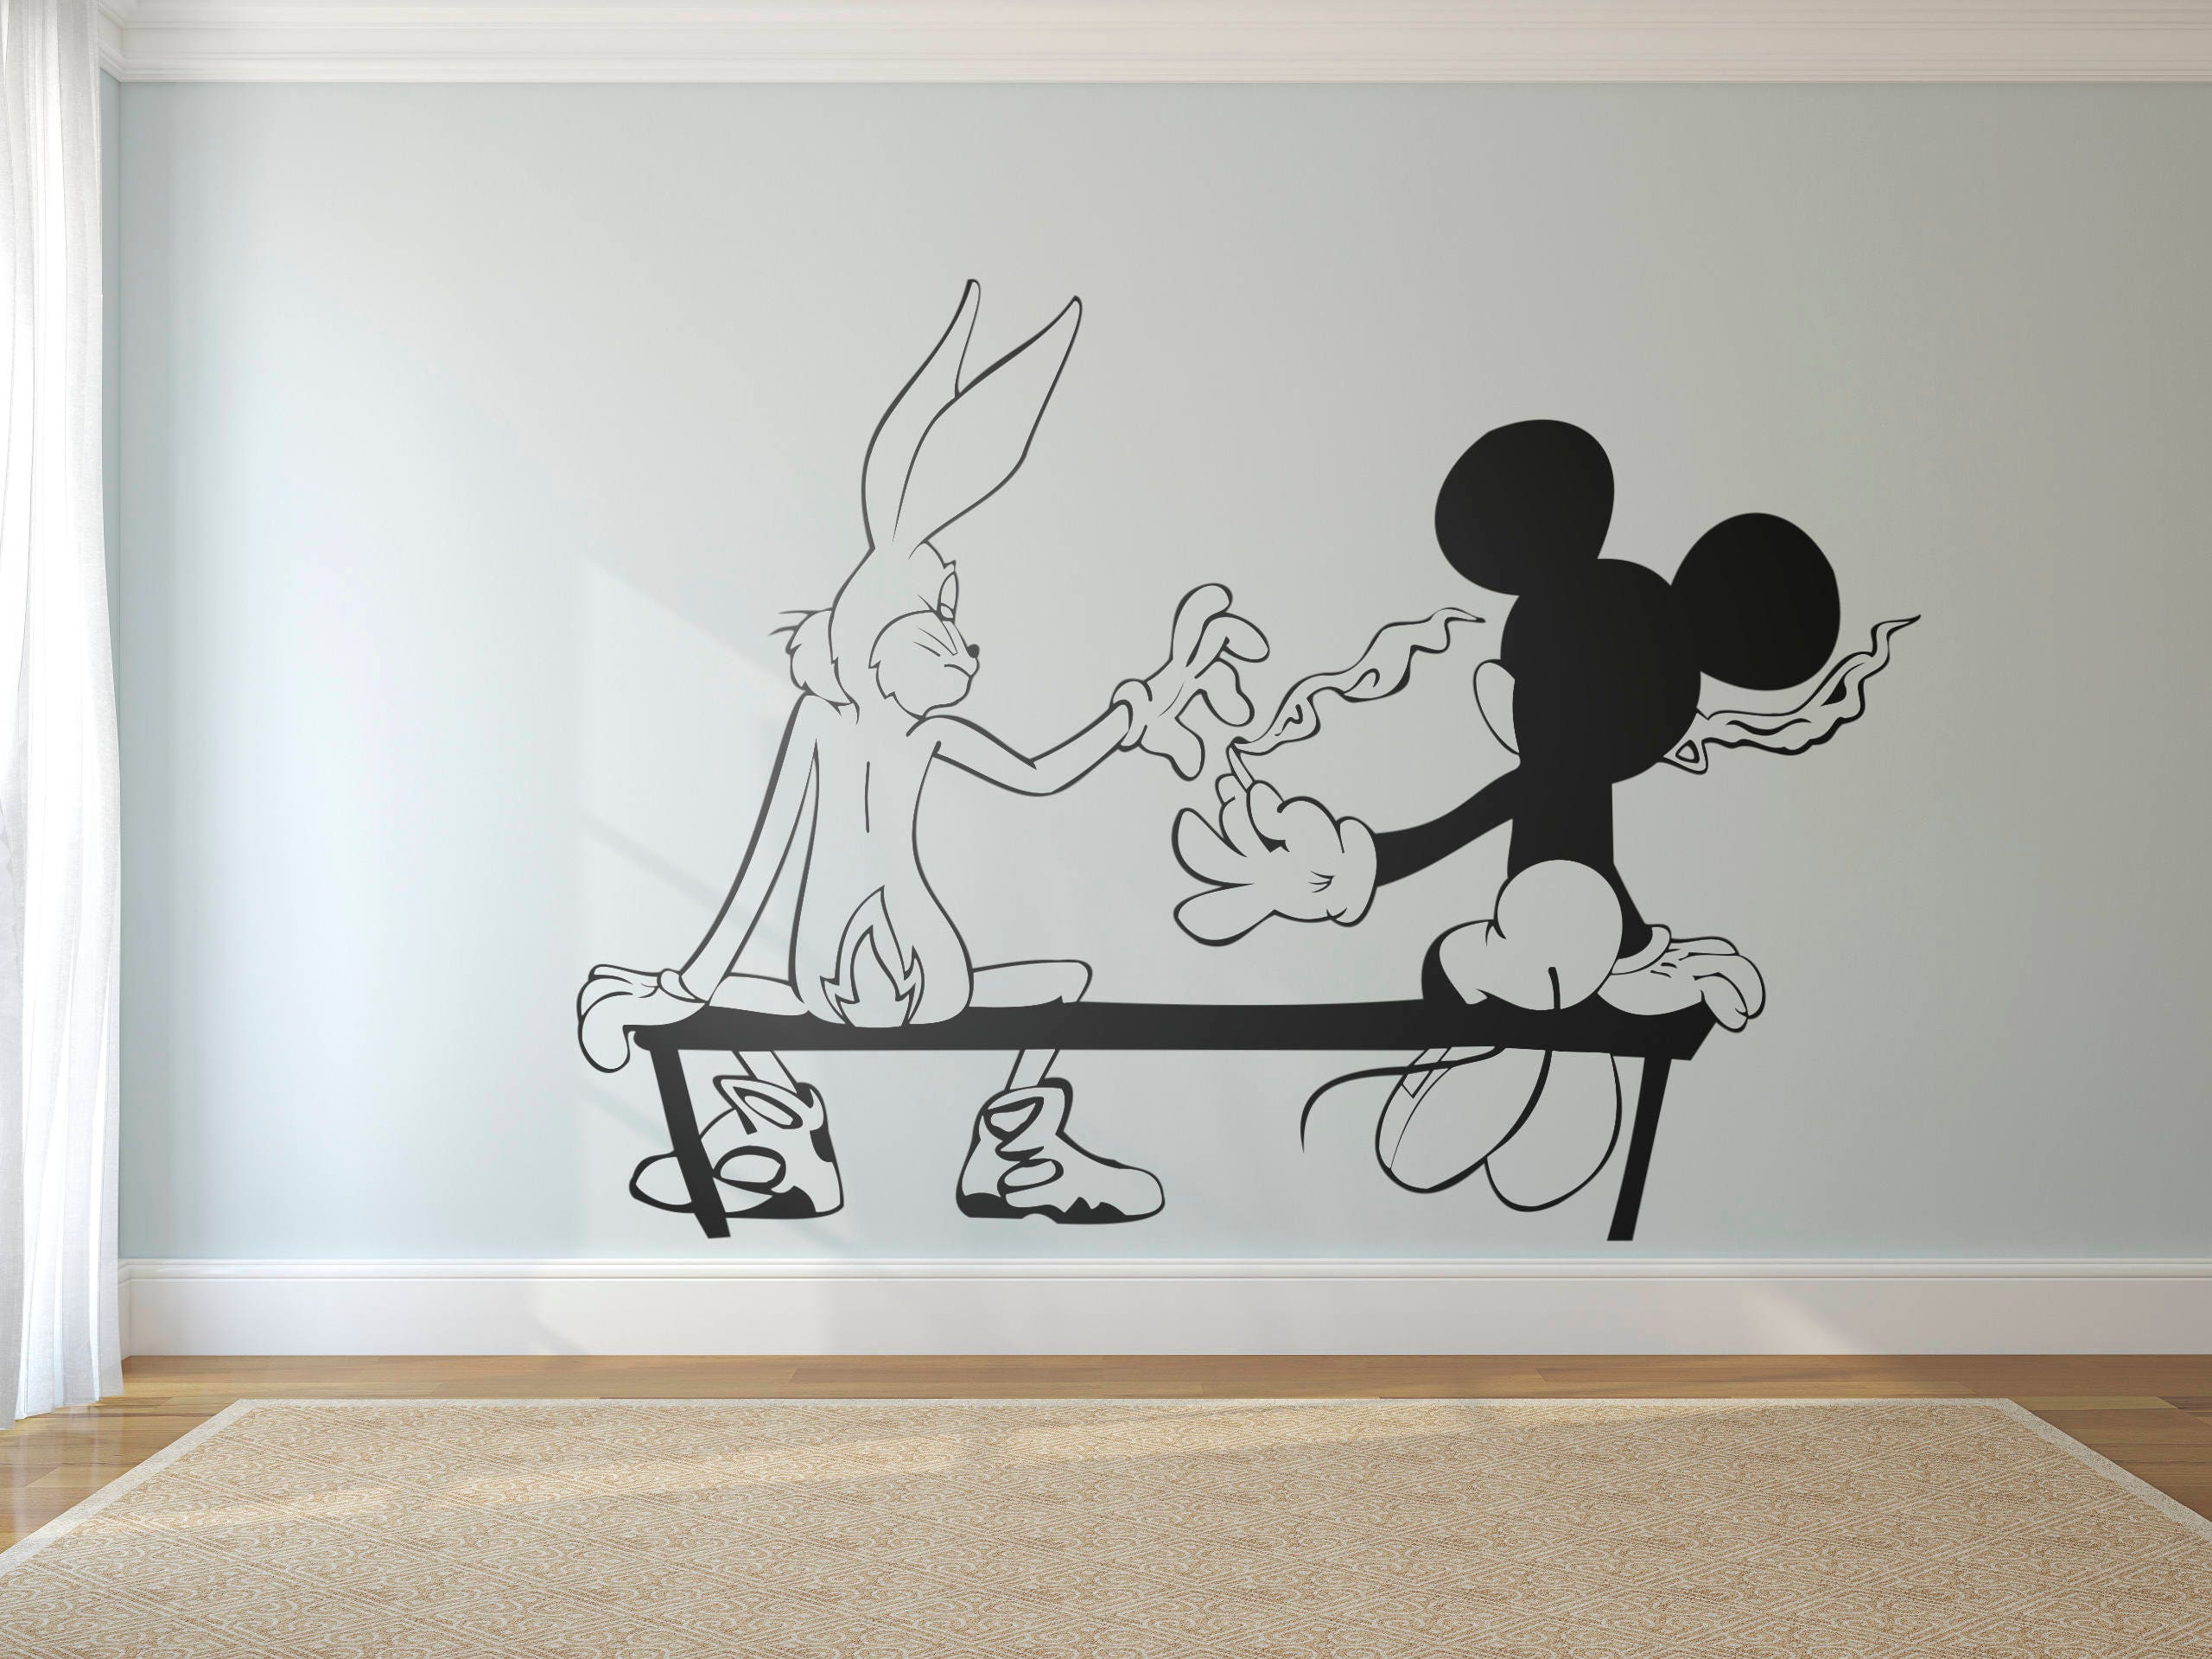 Stoners, Funny, Graffiti, Mice, Silhouette, Mouse and Bunny, Vinyl ...